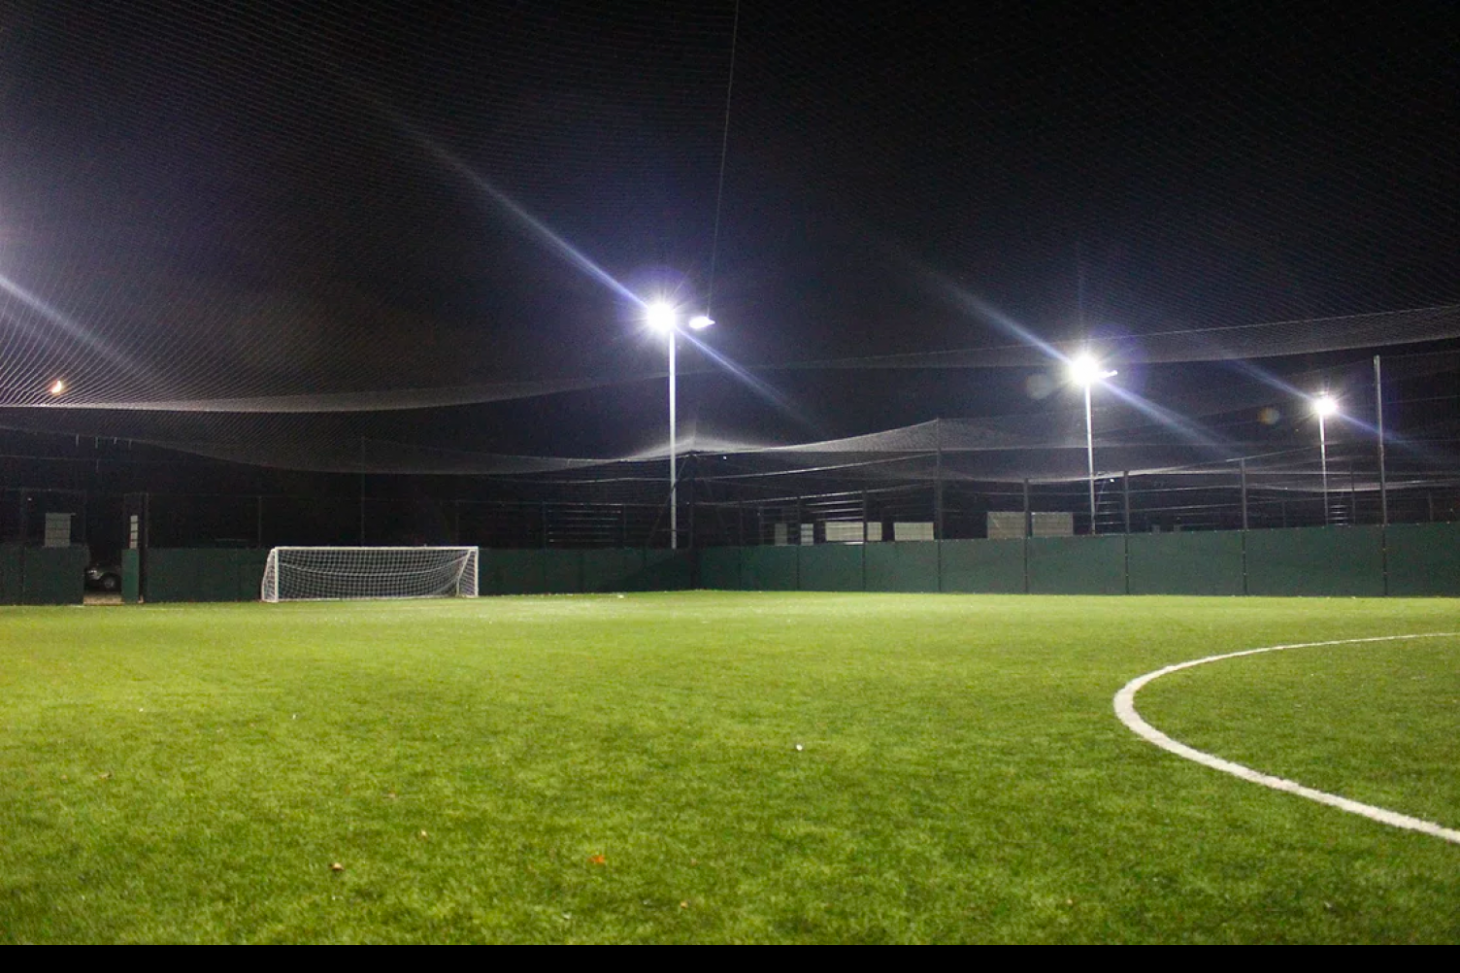 Shooters Football 5 a side | 3G Astroturf football pitch